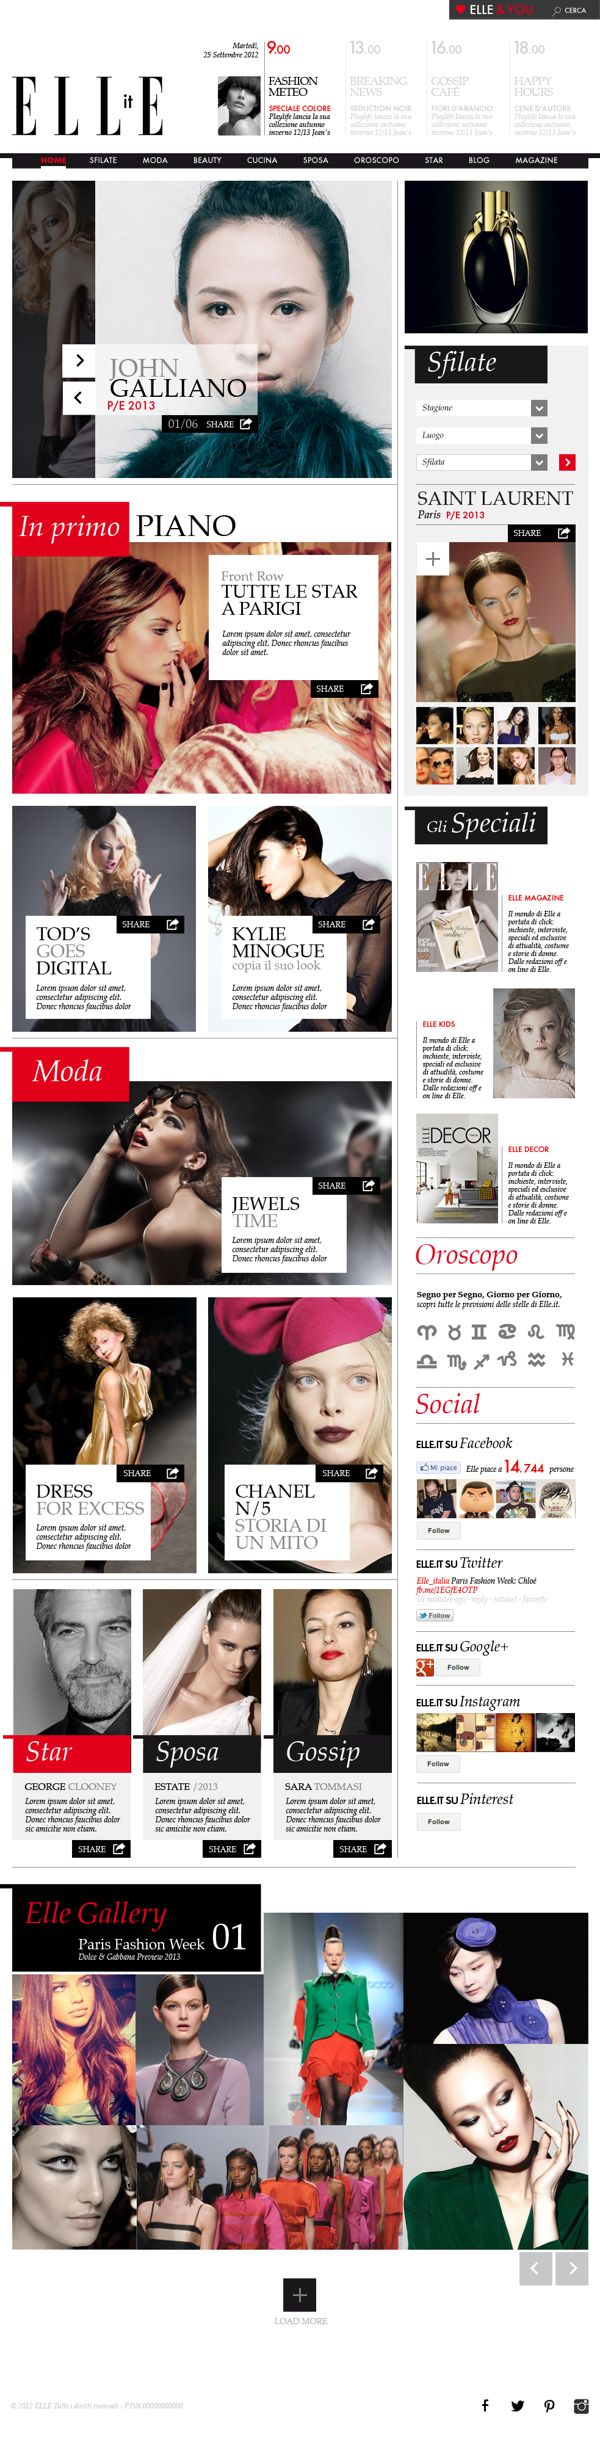 Elle Concept by Andrea Caucino, via Behance #webdesign #interface #ELLE